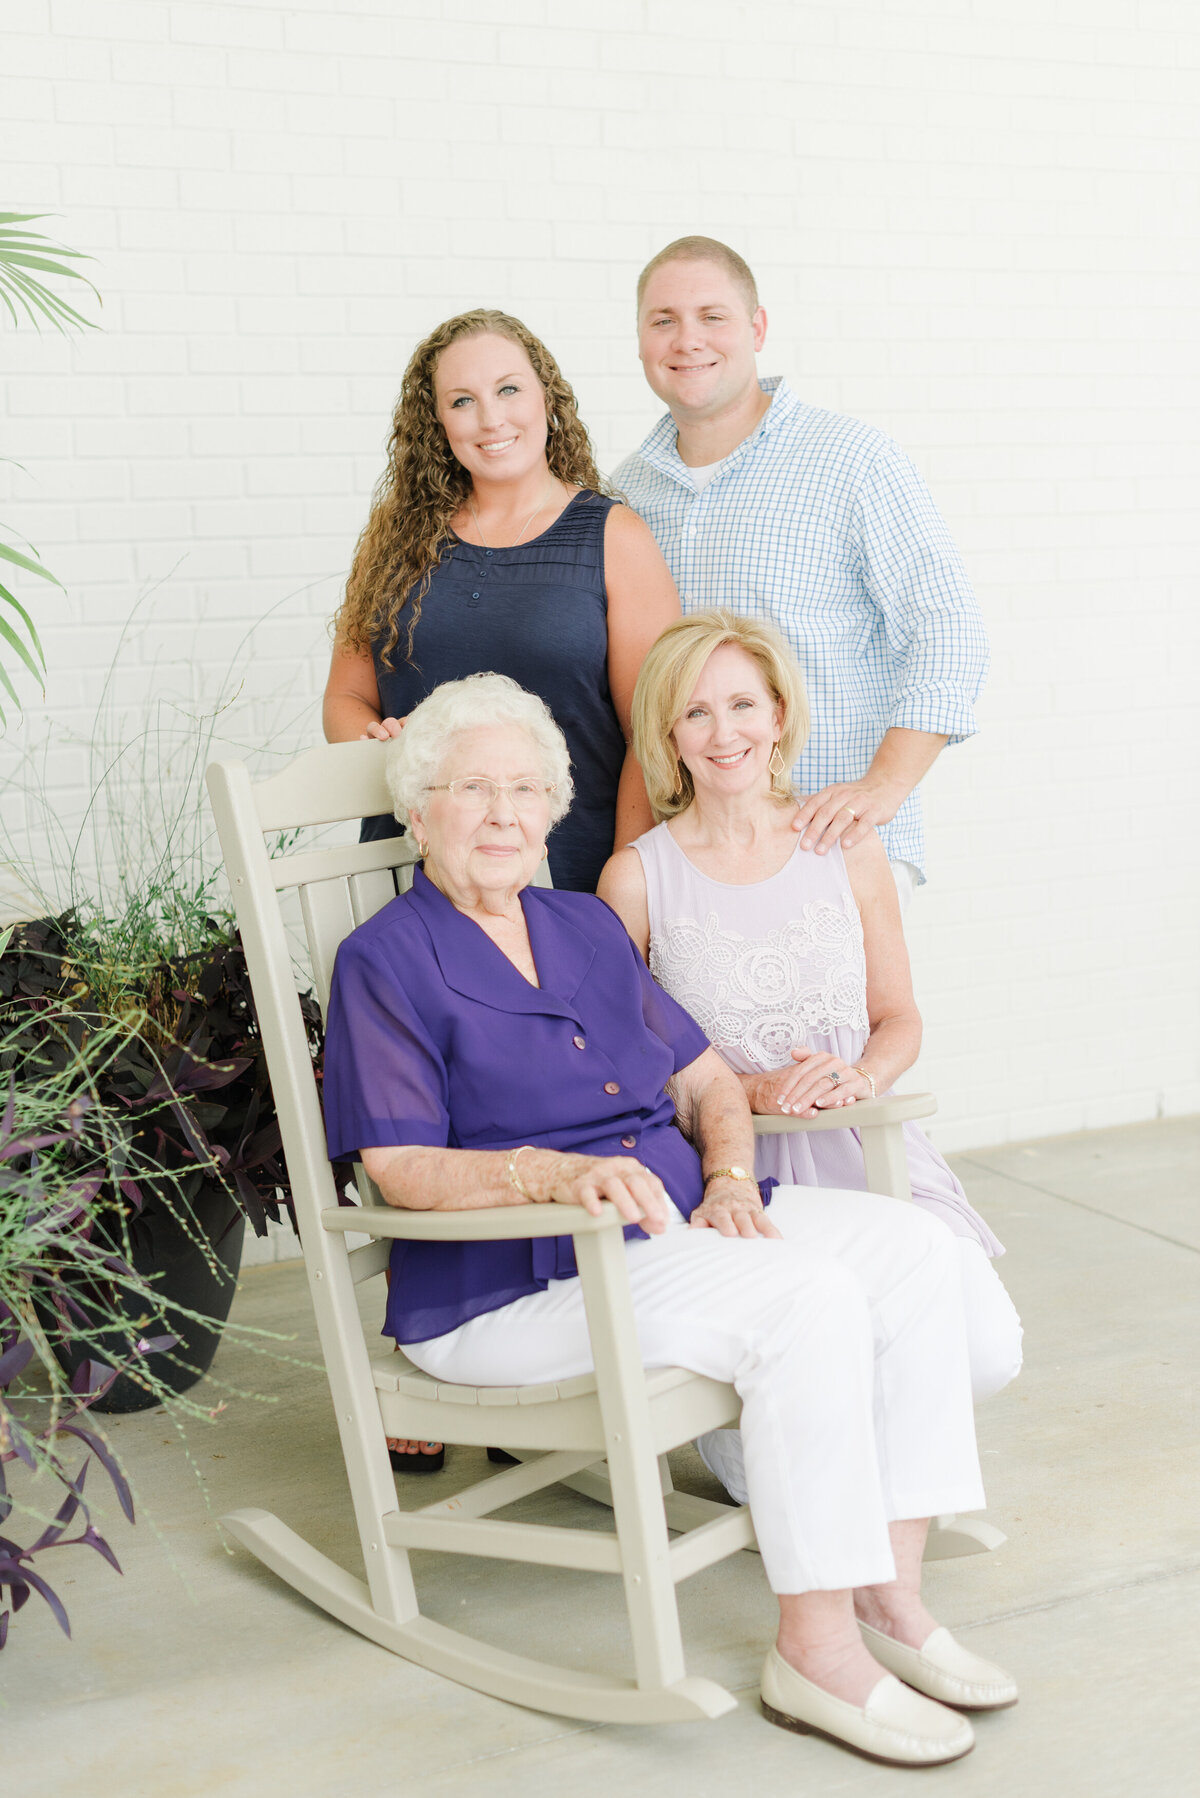 family-photographer-virginia-beach-tonya-volk-photography-44